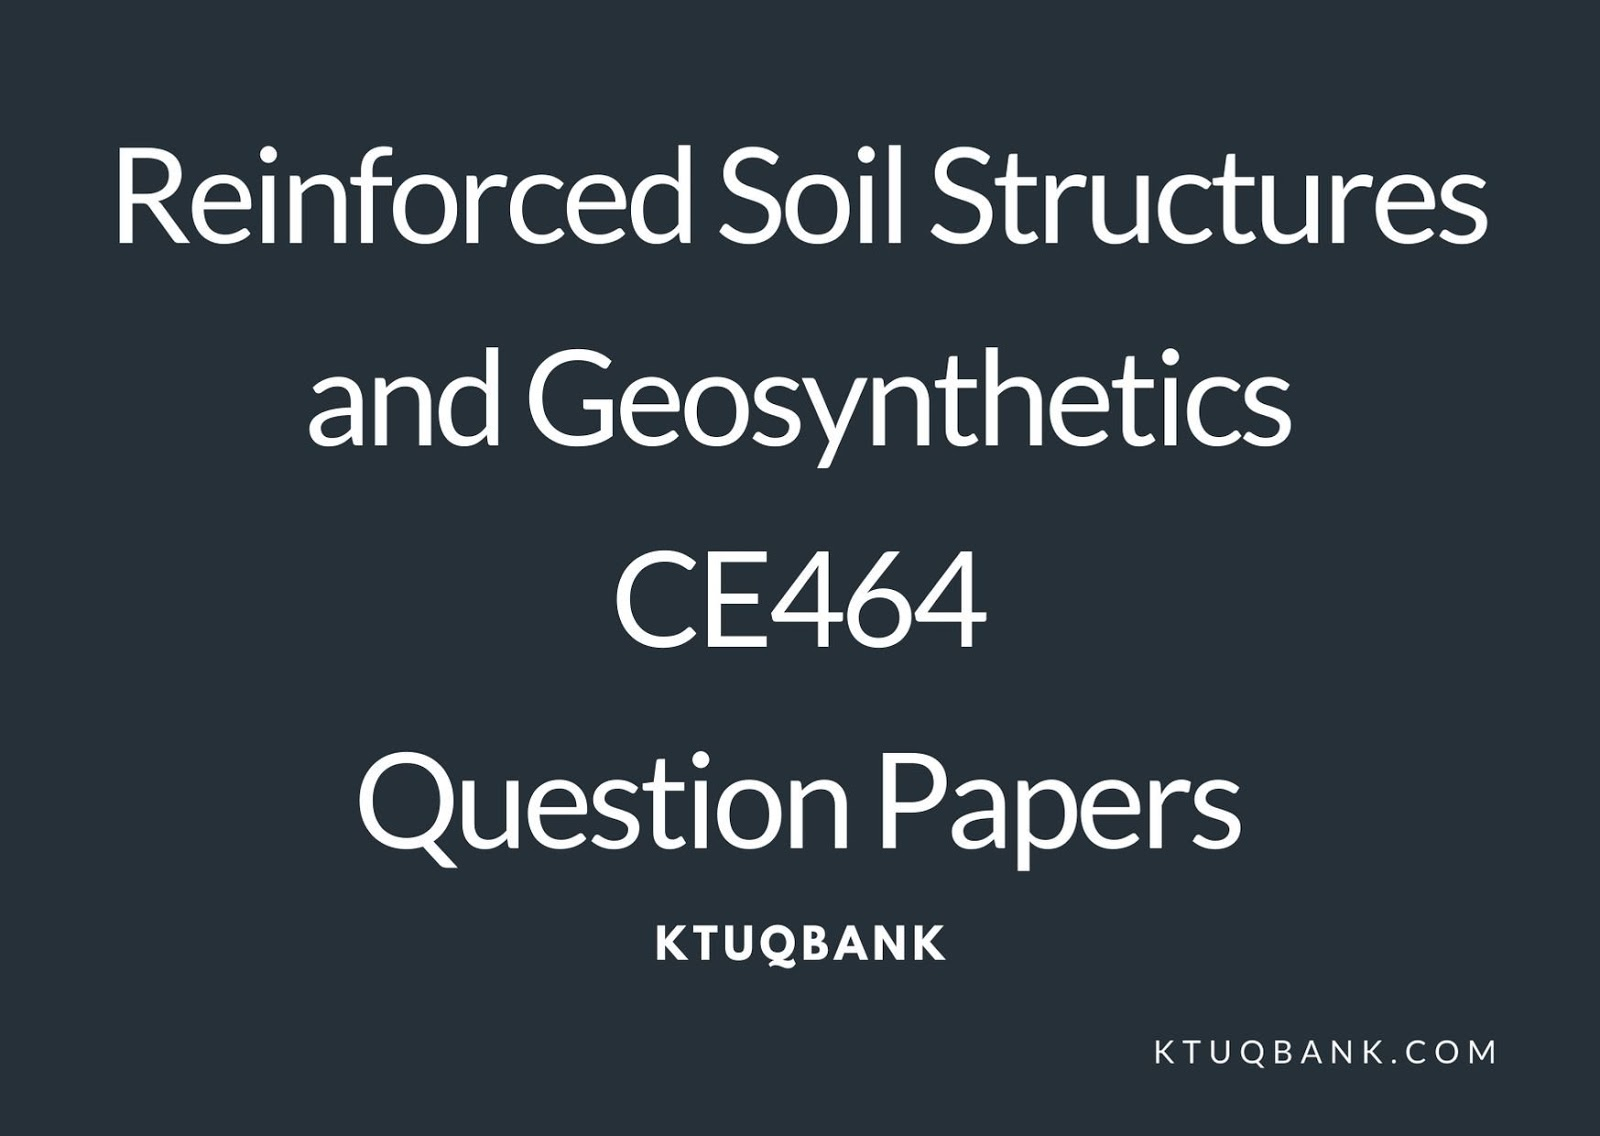 Reinforced Soil Structures and Geosynthetics | CE464 | Question Papers (2015 batch)